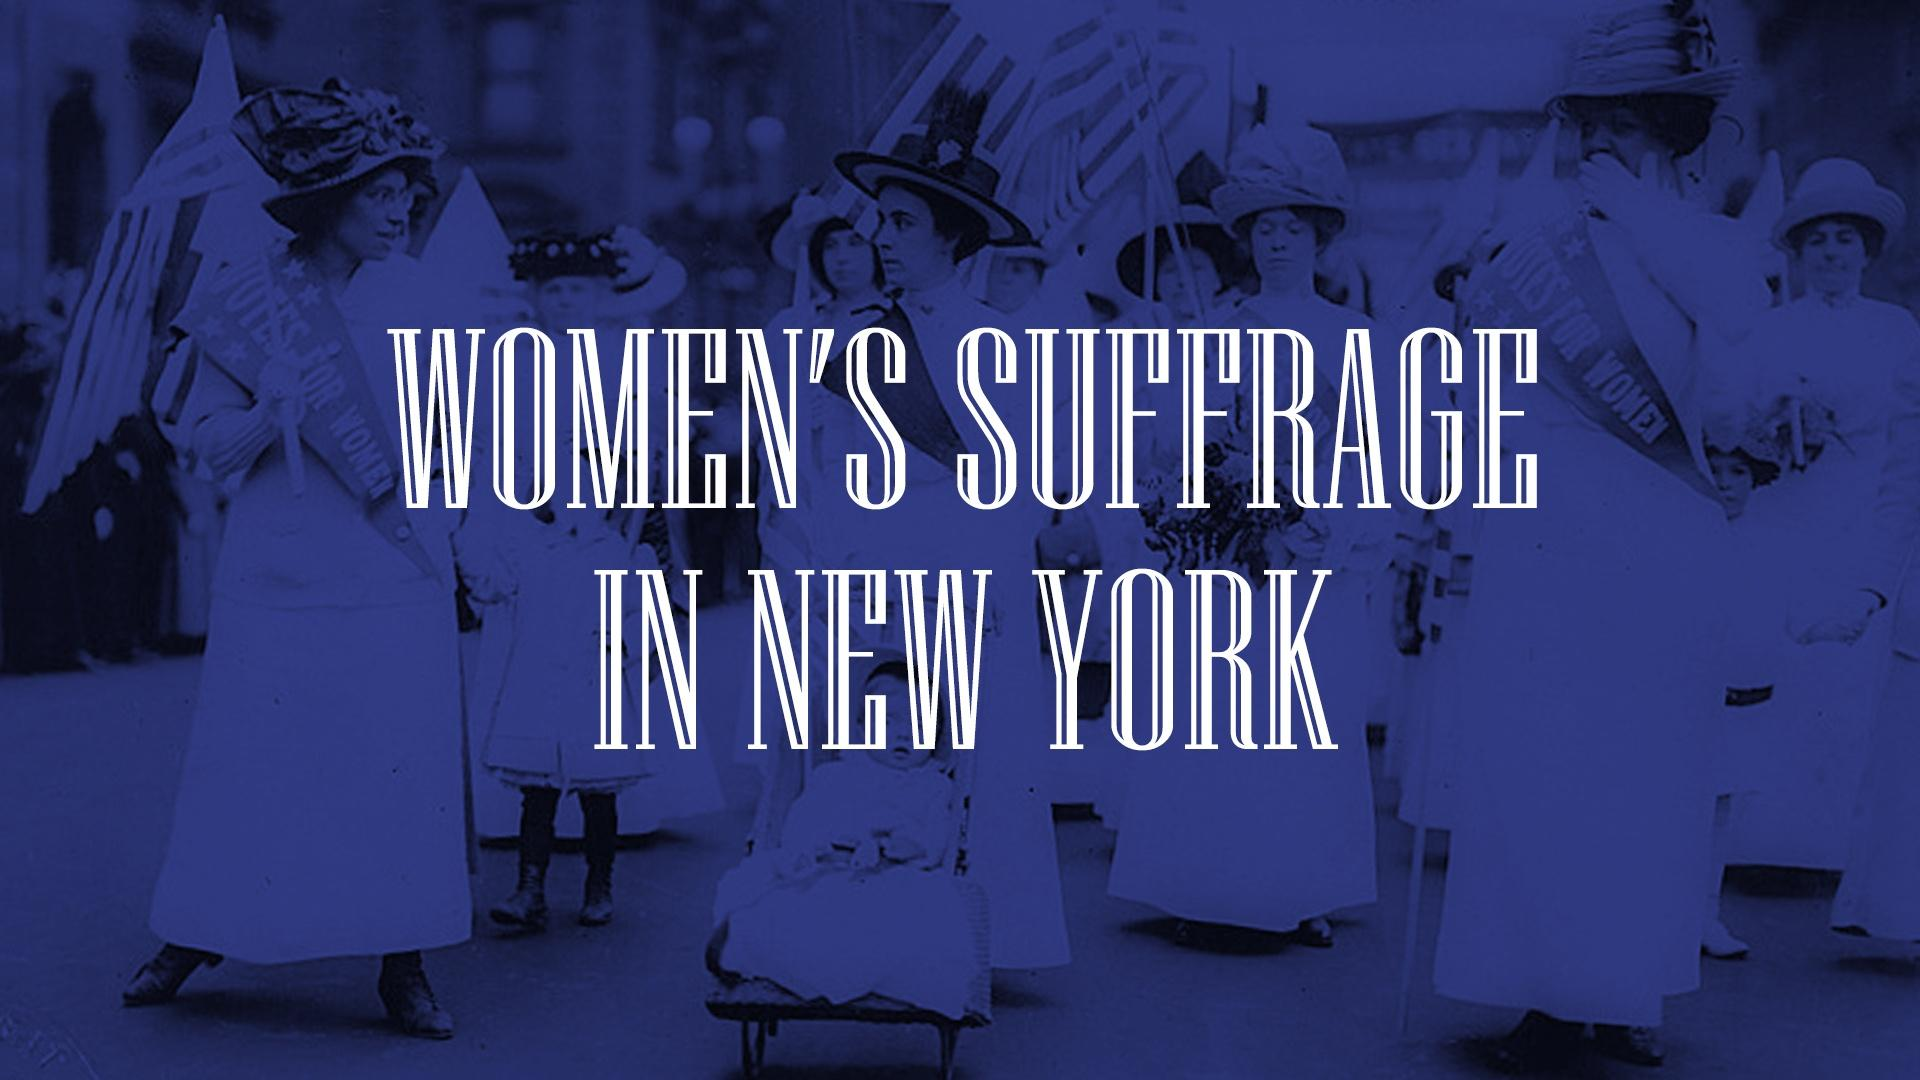 Women's Suffrage in New York